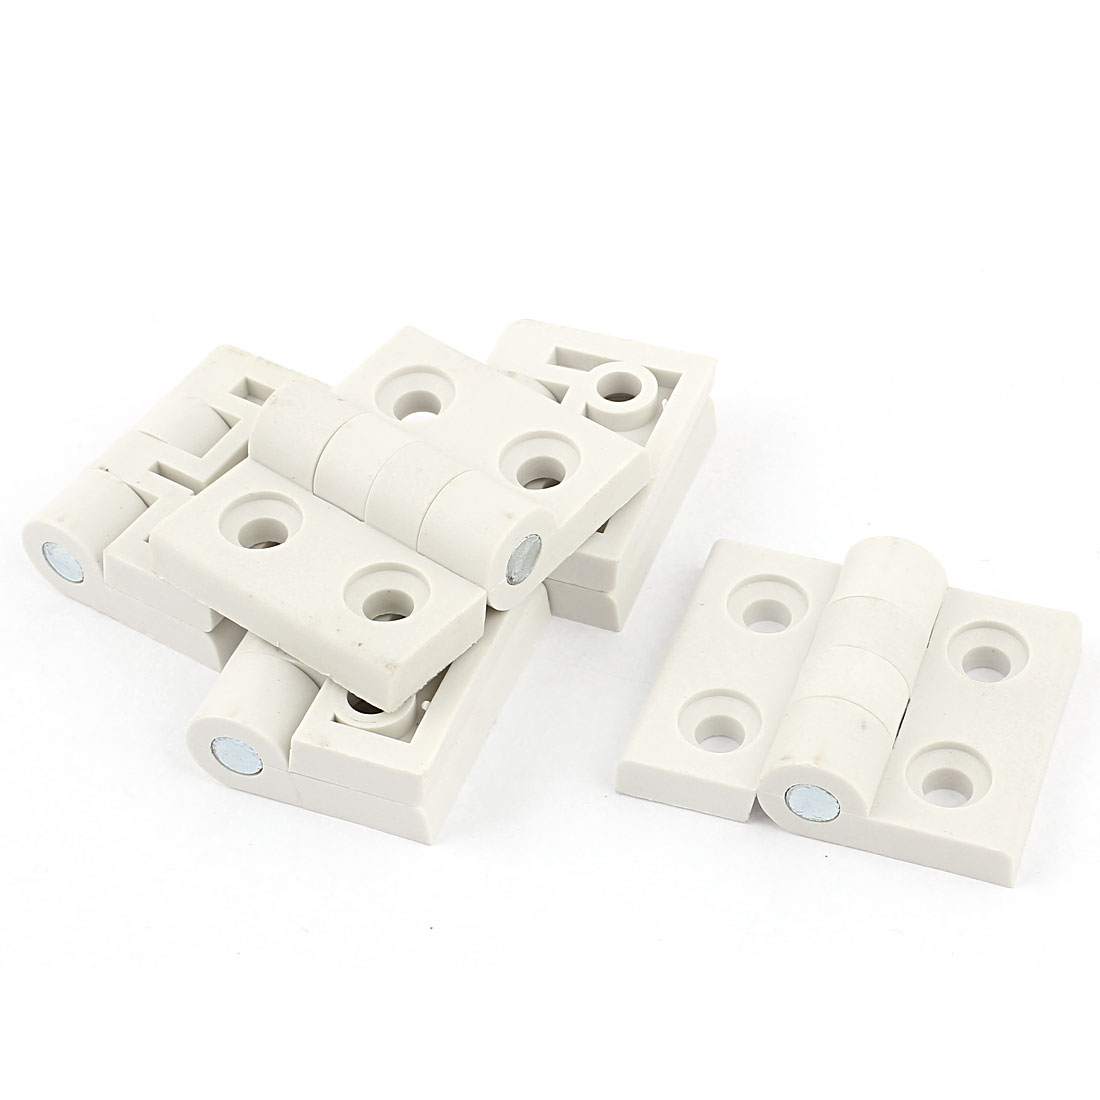 Cupboard Cabinet Door Plastic Ball Bearing Butt Hinge 46mm x 58mm 5Pcs White